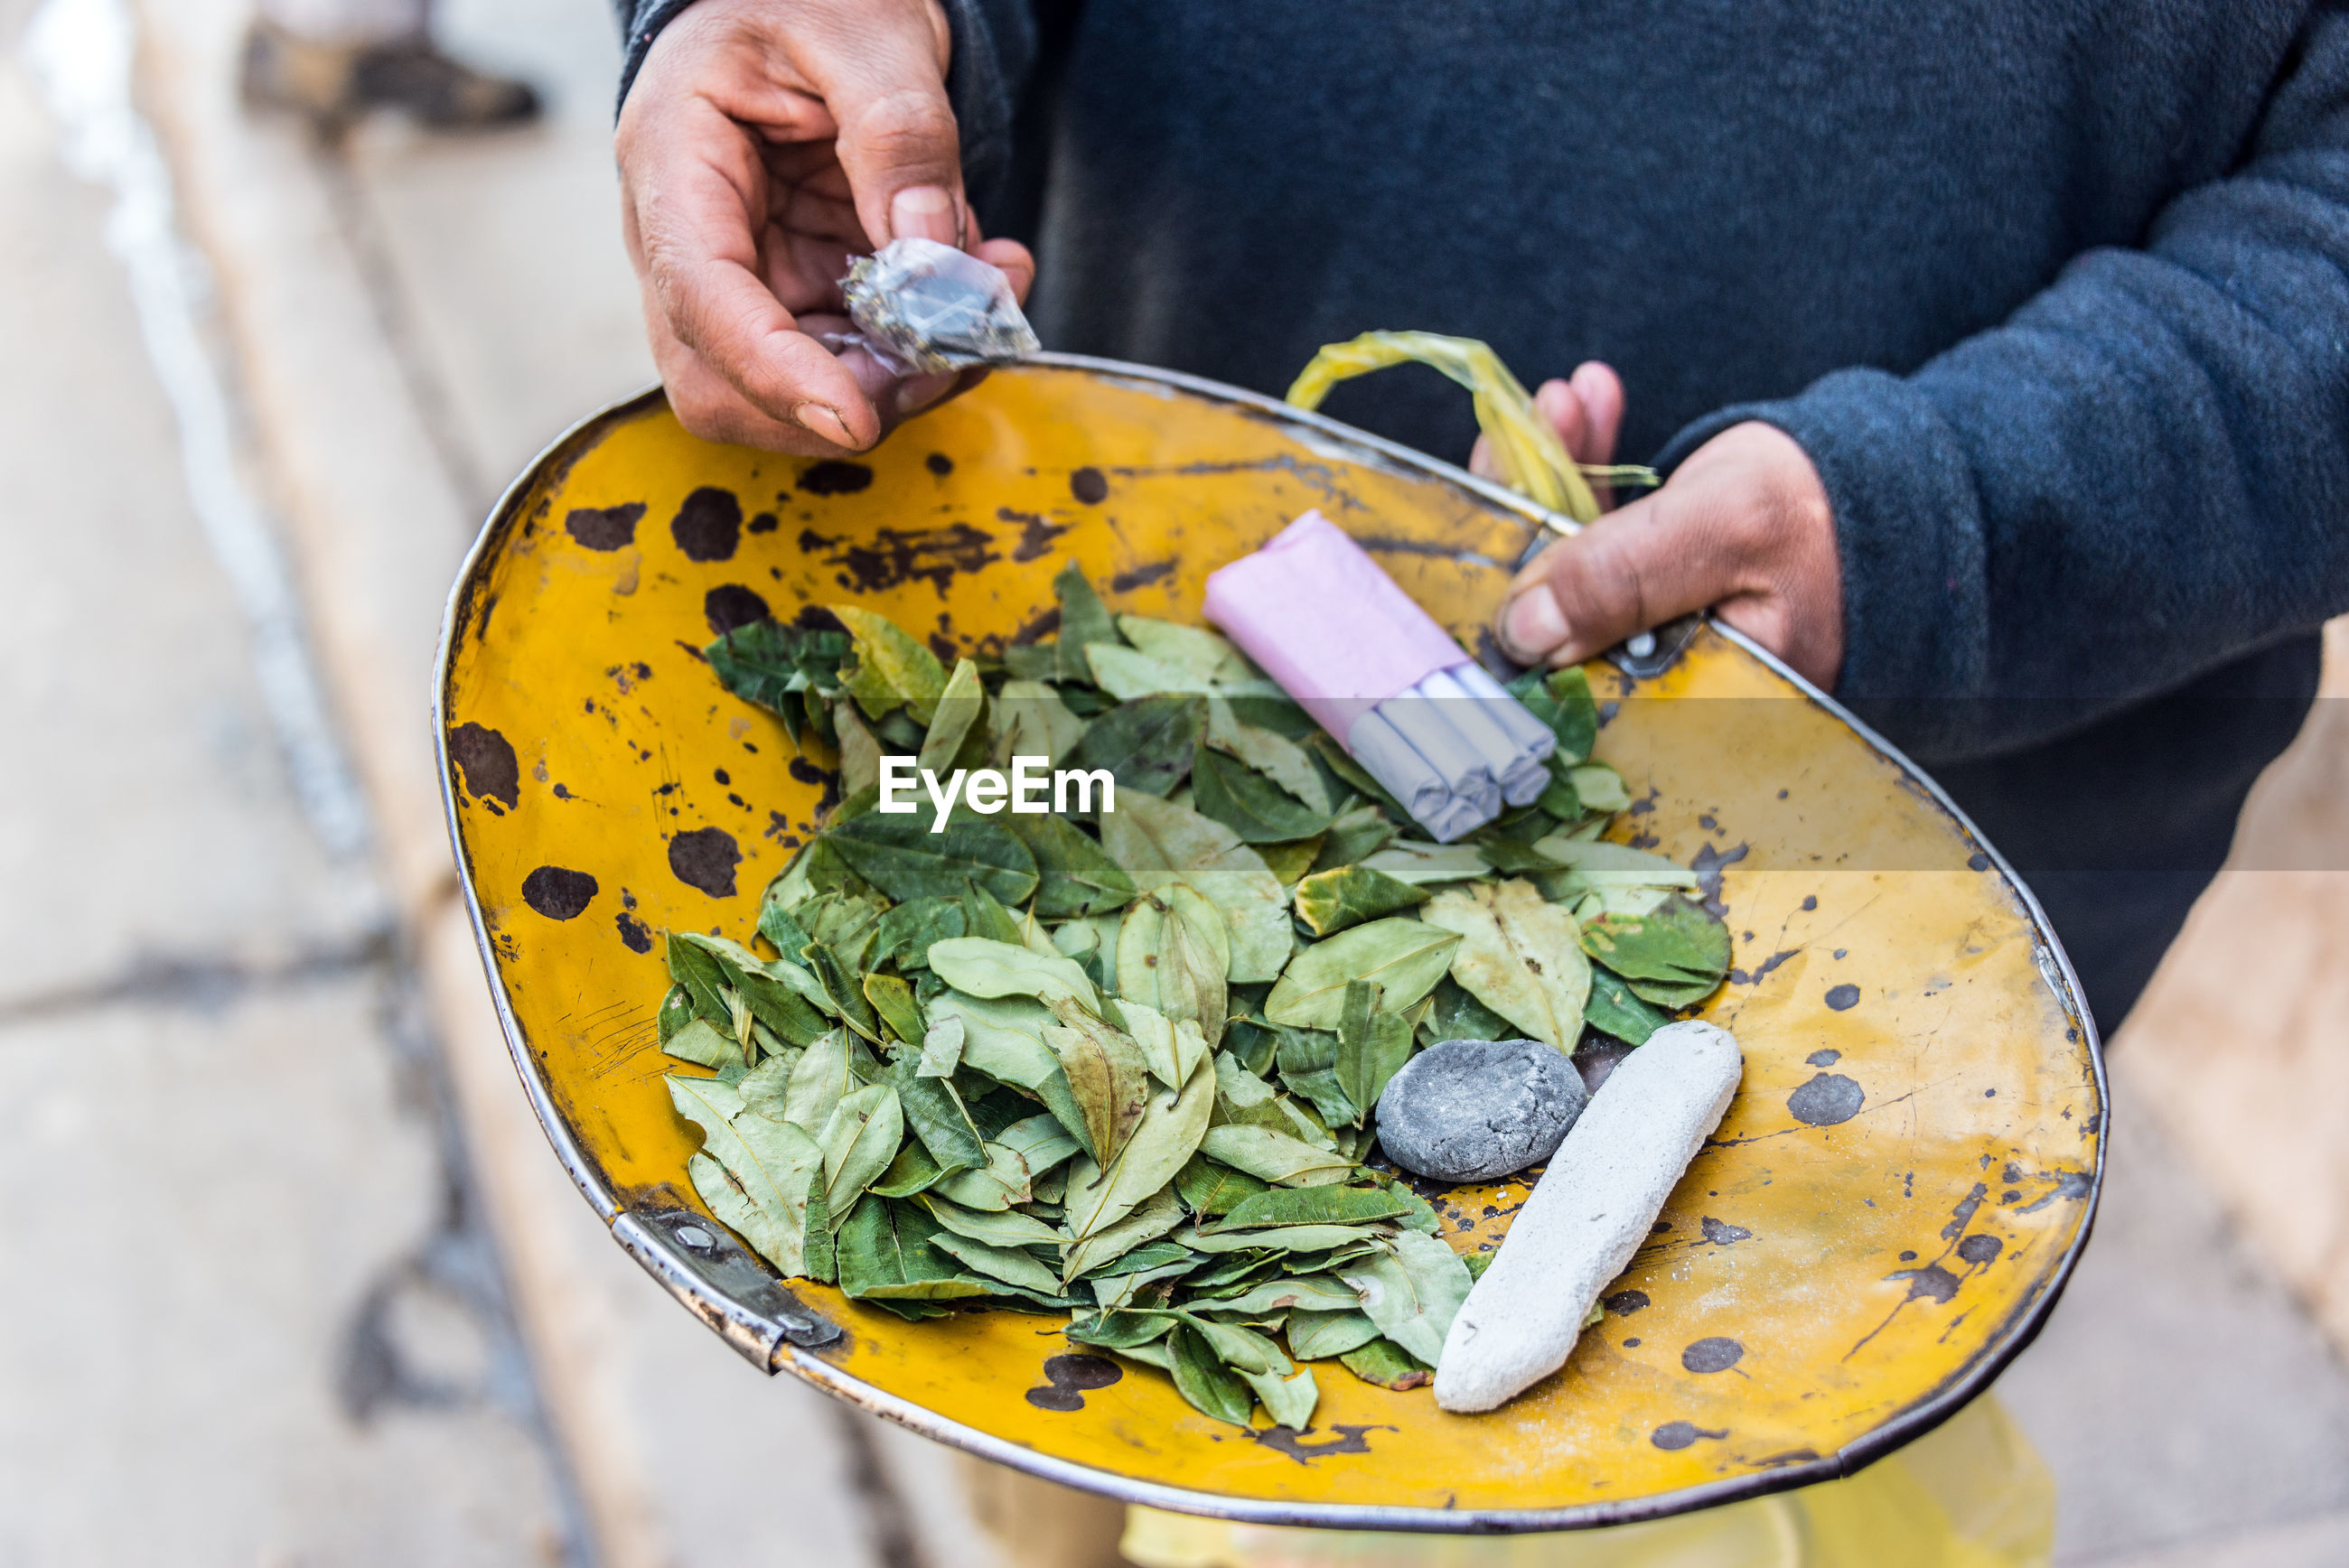 Midsection of person holding coca leaves and cigarettes in plate